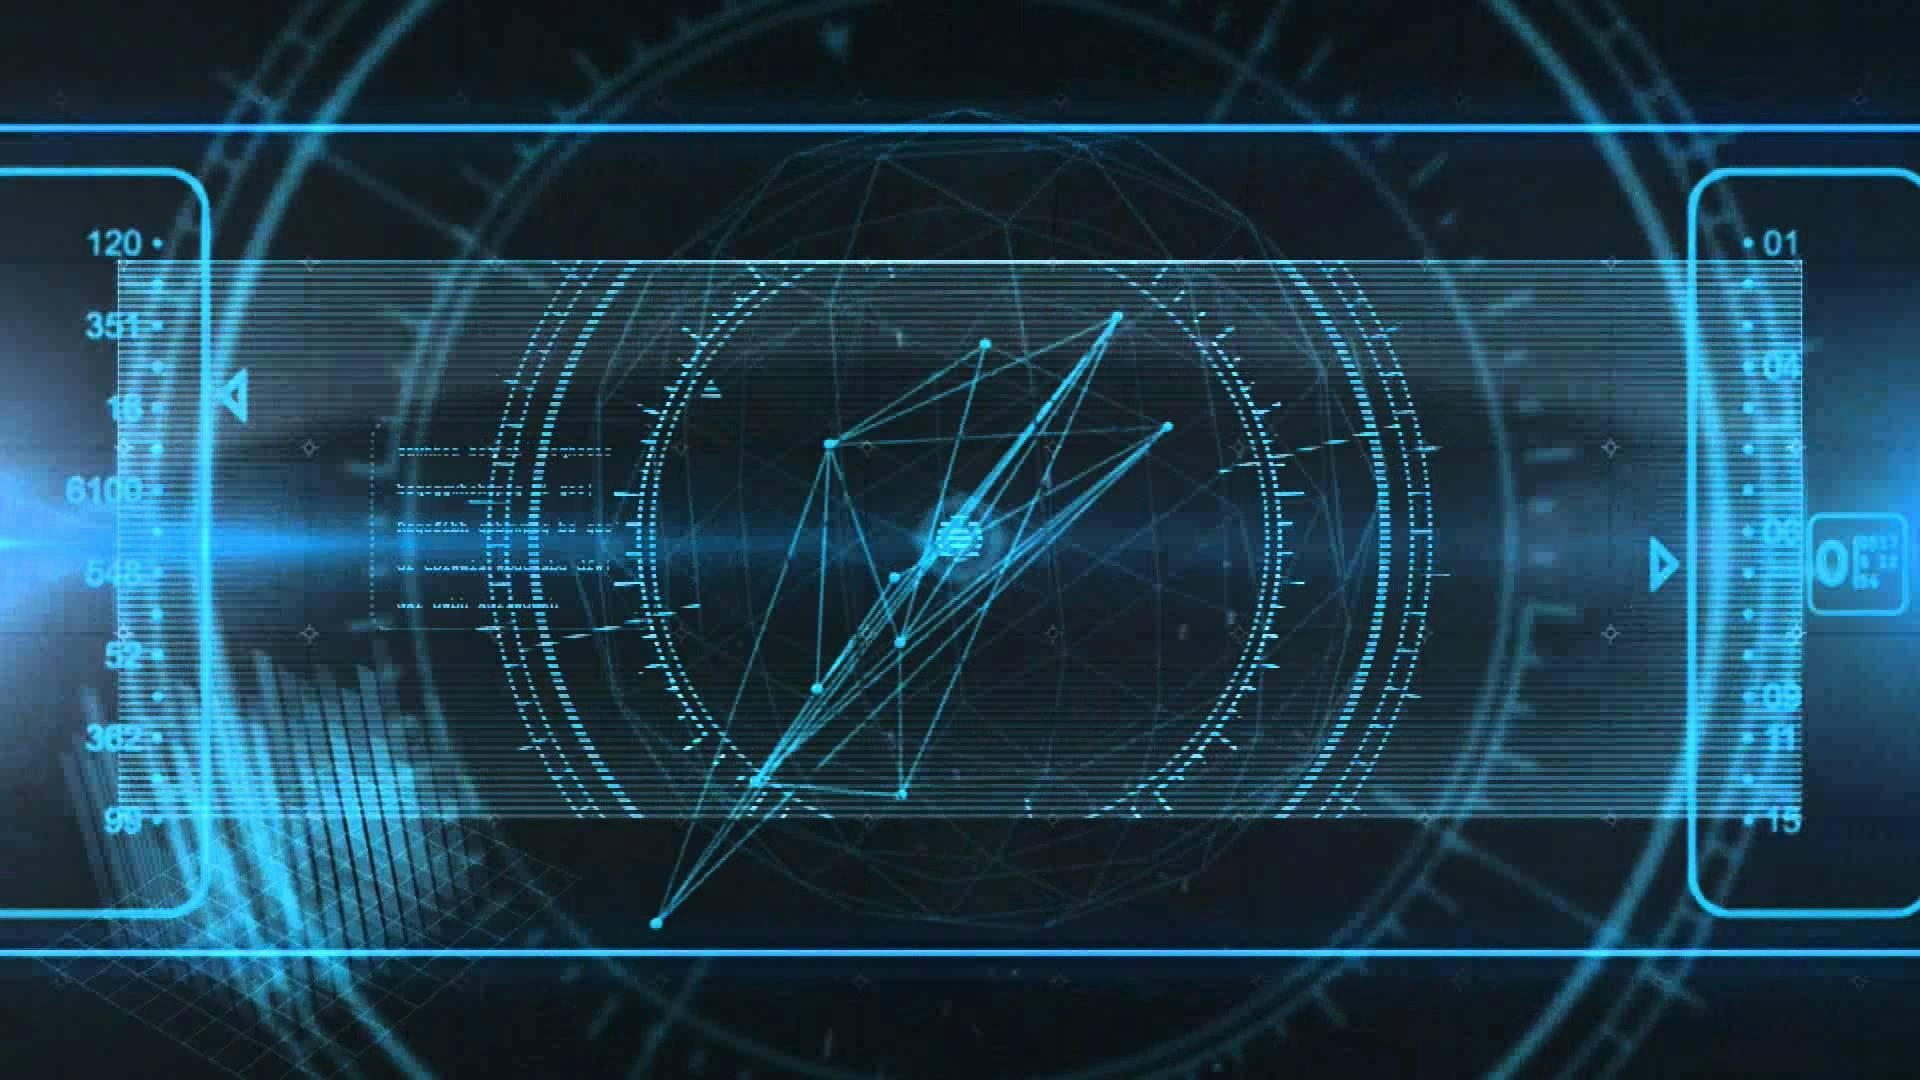 holographic will template - future technology wallpaper